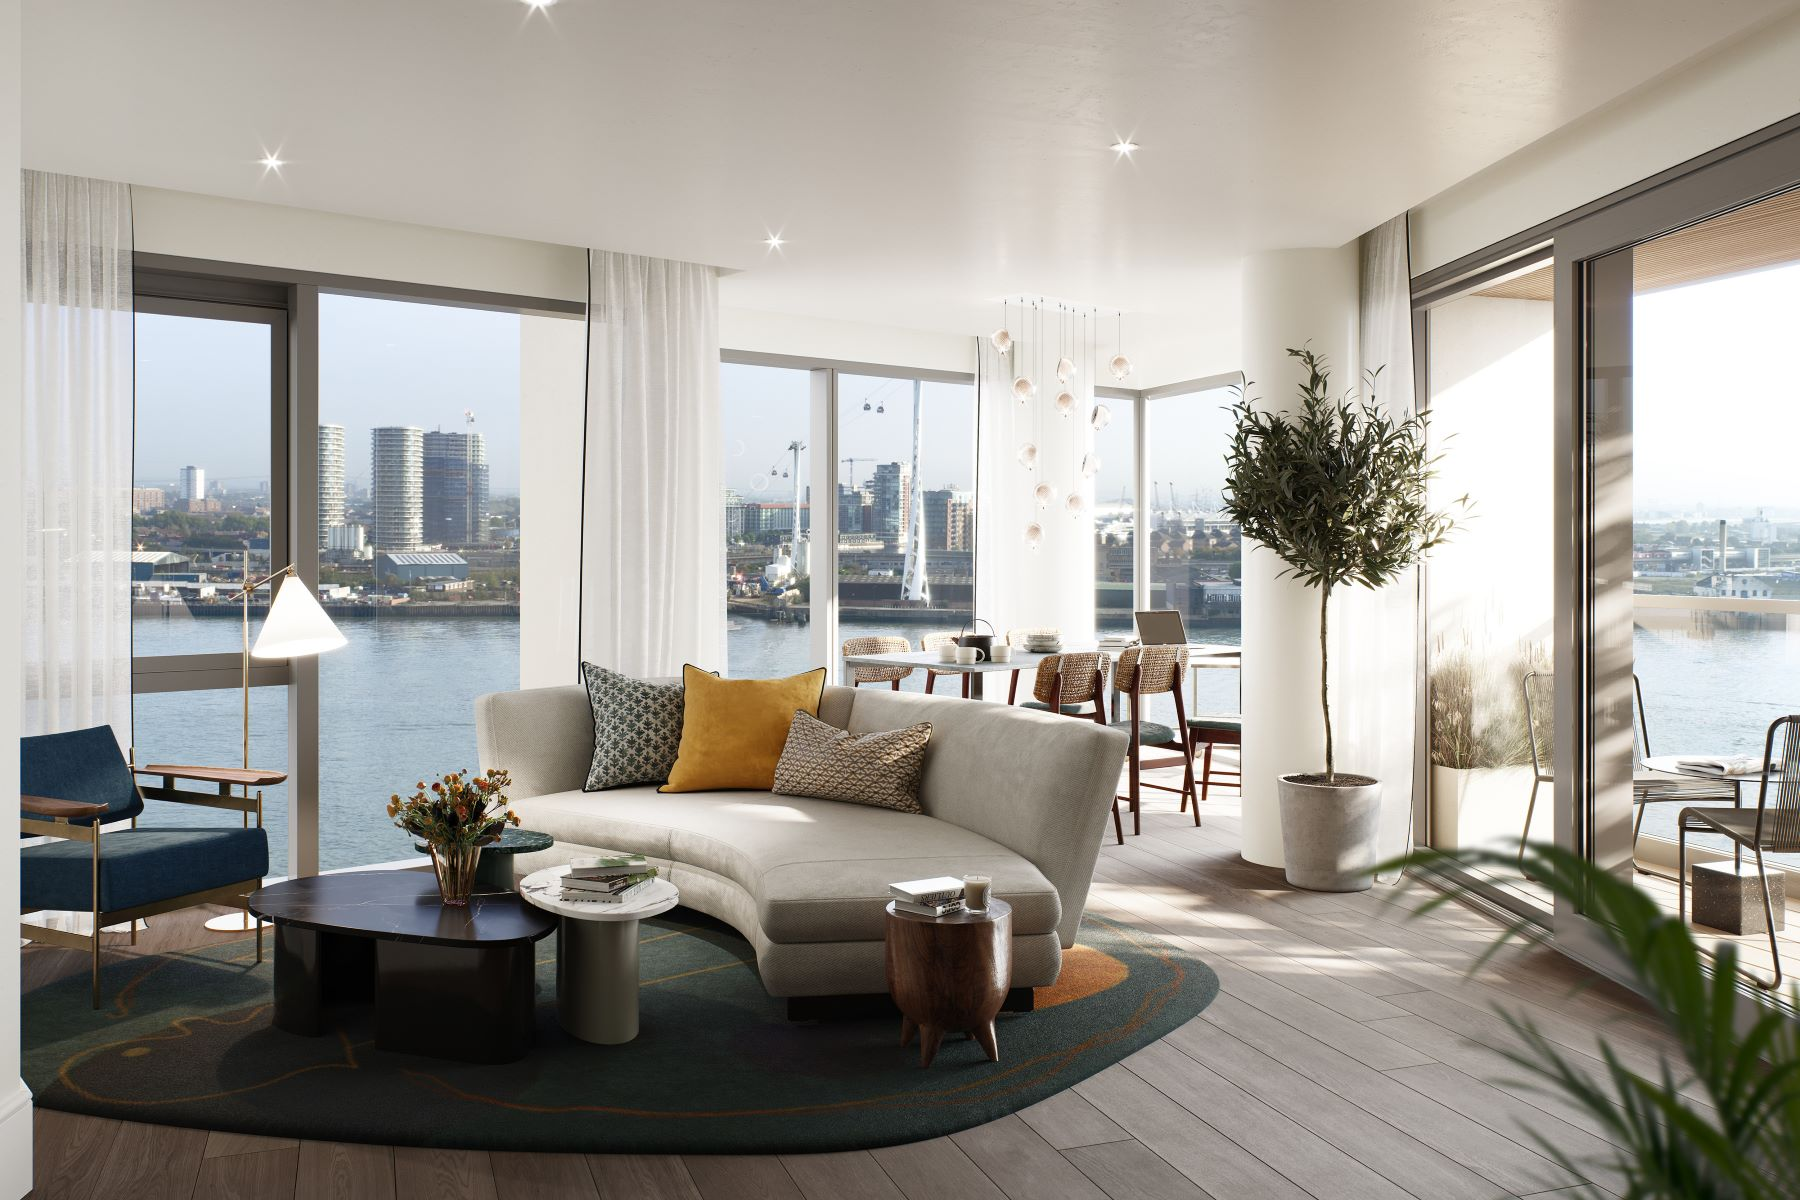 Apartments for Sale at Greenwich Peninsula Building 3 (12.06) Upper Riverside London, England SE10 0SQ United Kingdom